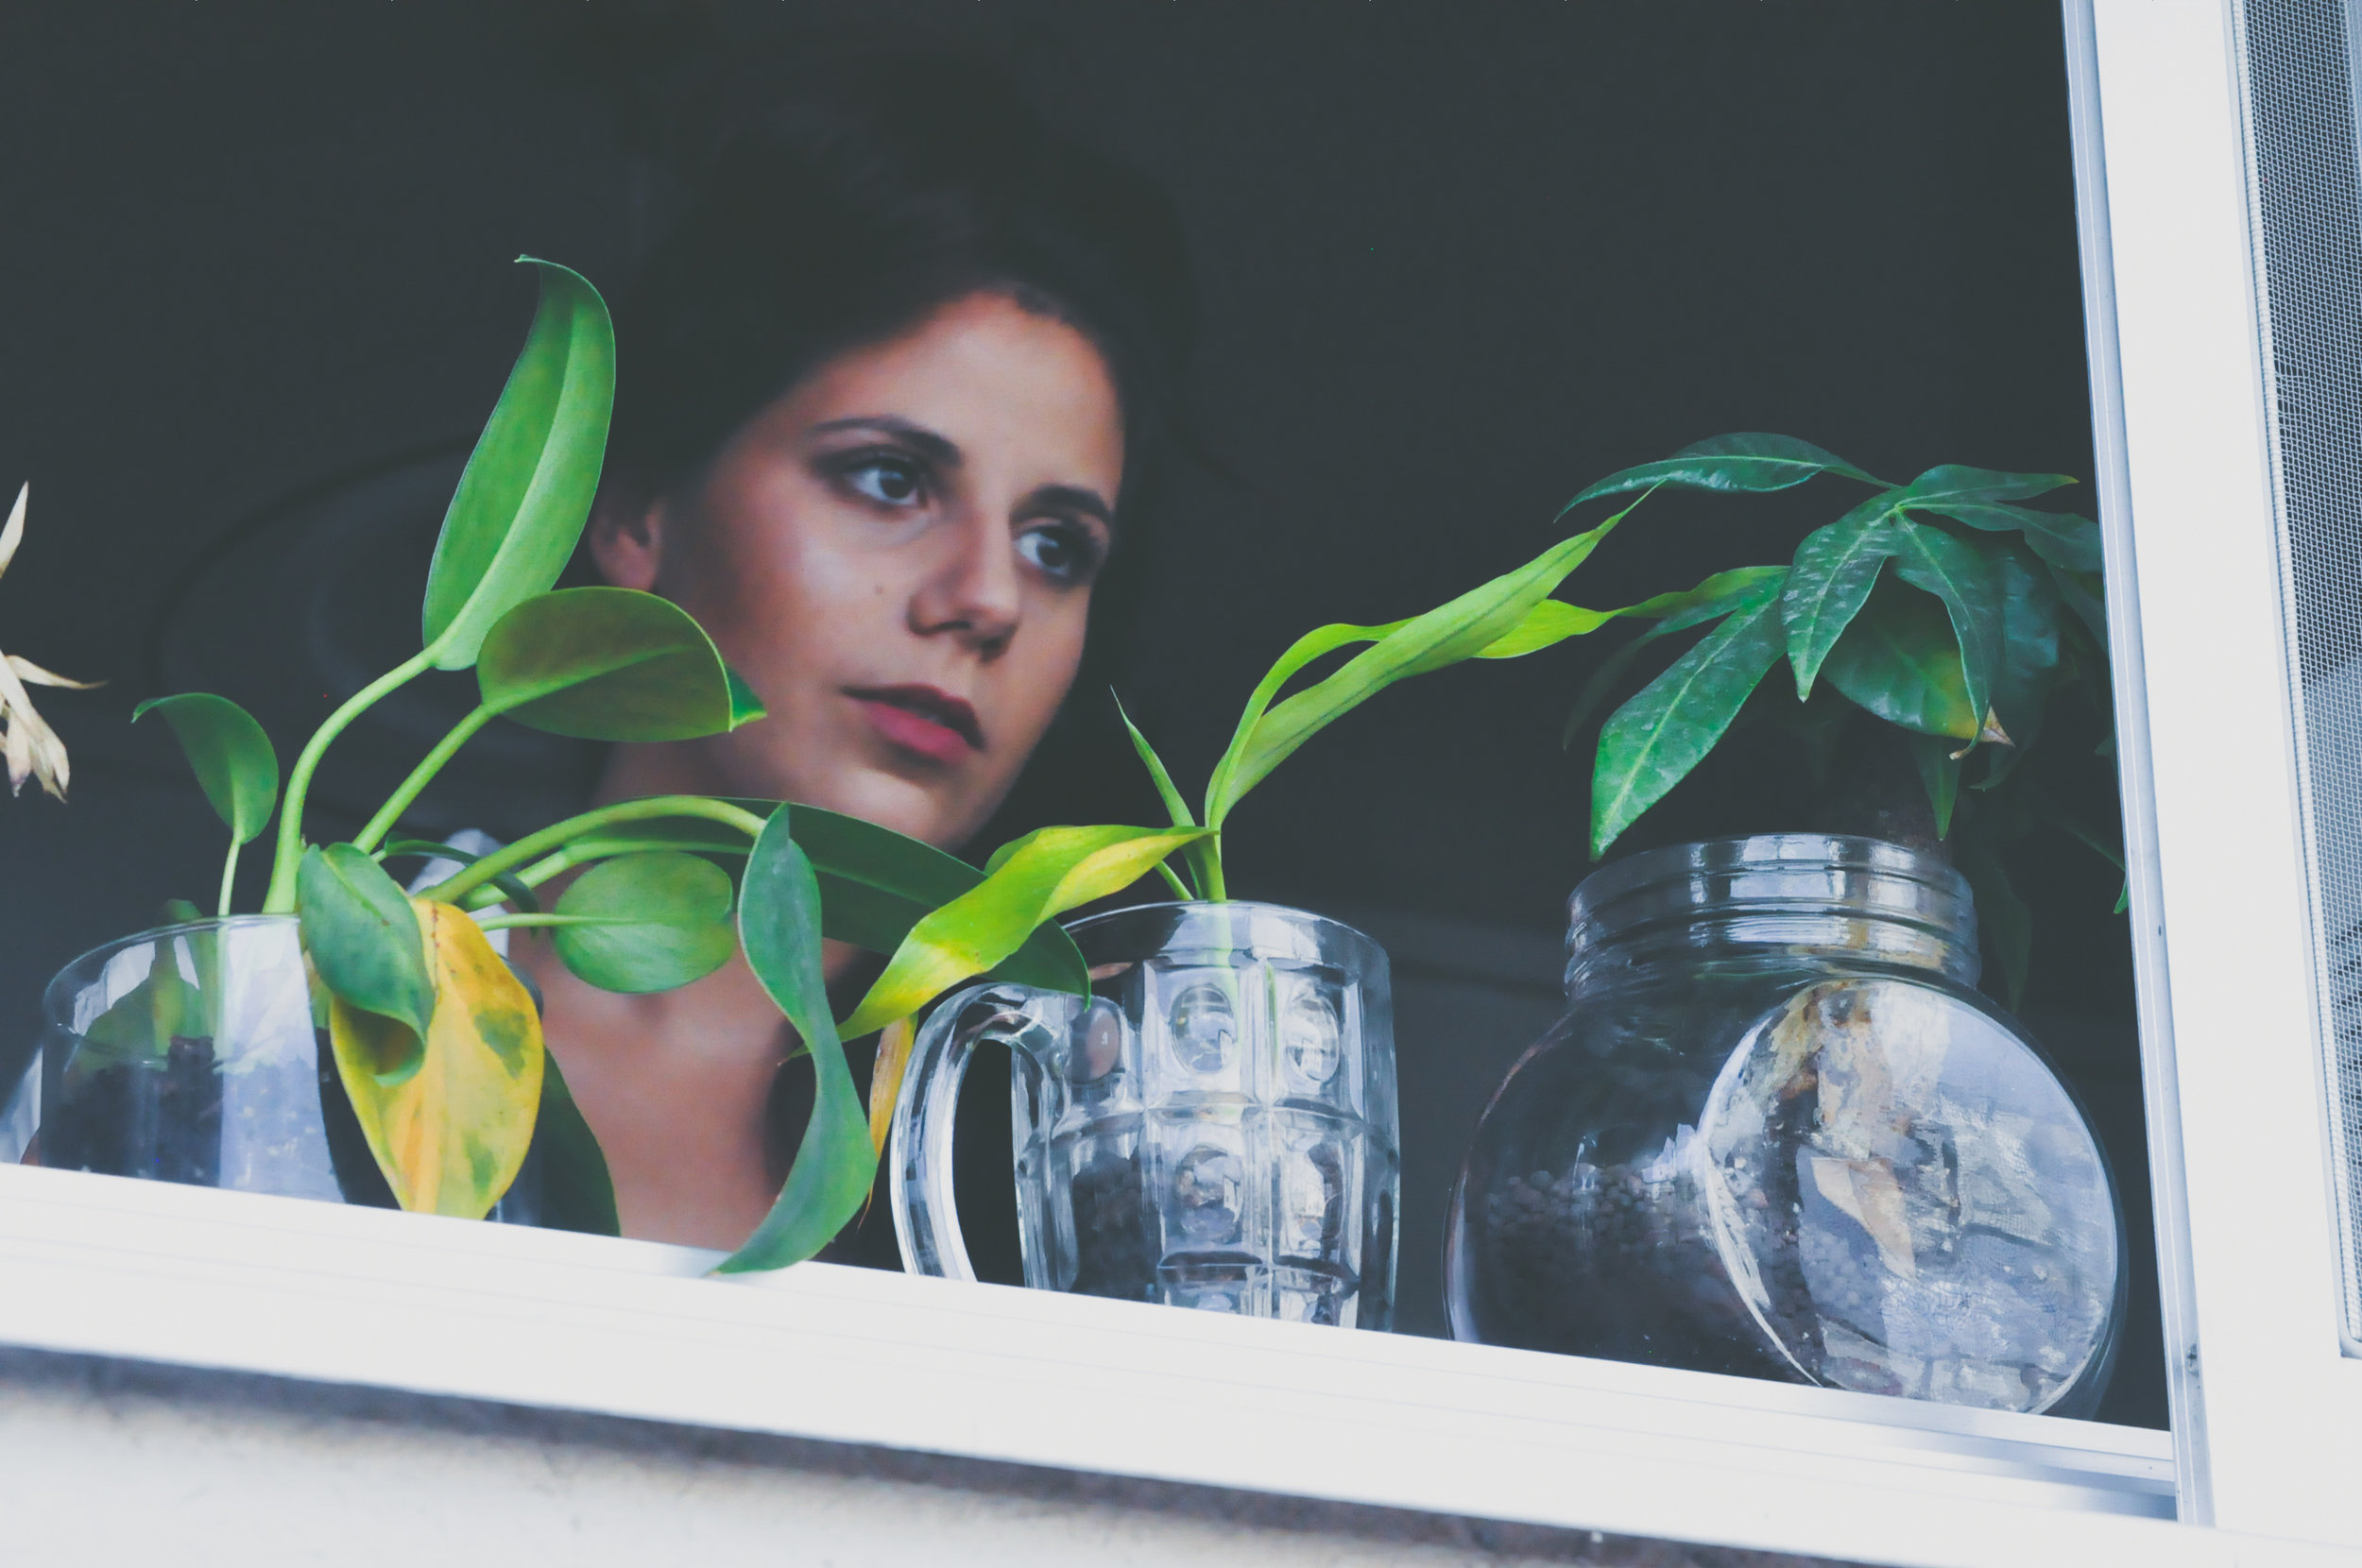 uwm.plants.person-woman-photography-house-window-model-1141949-pxhere.com